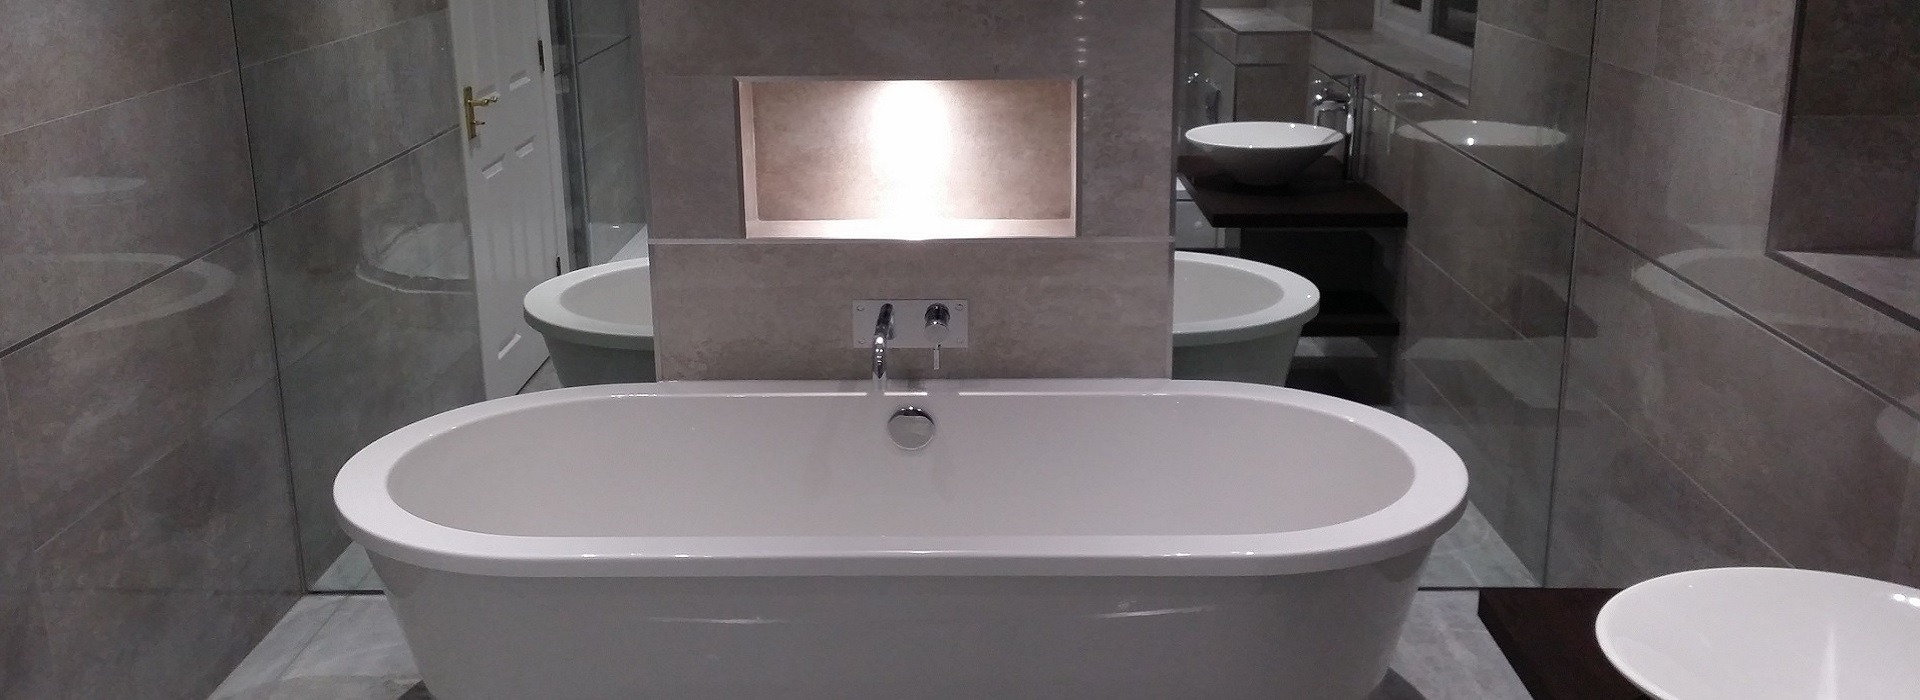 Bathroom fitters grace hanson bathroom fitters wirral for Bathrooms liverpool